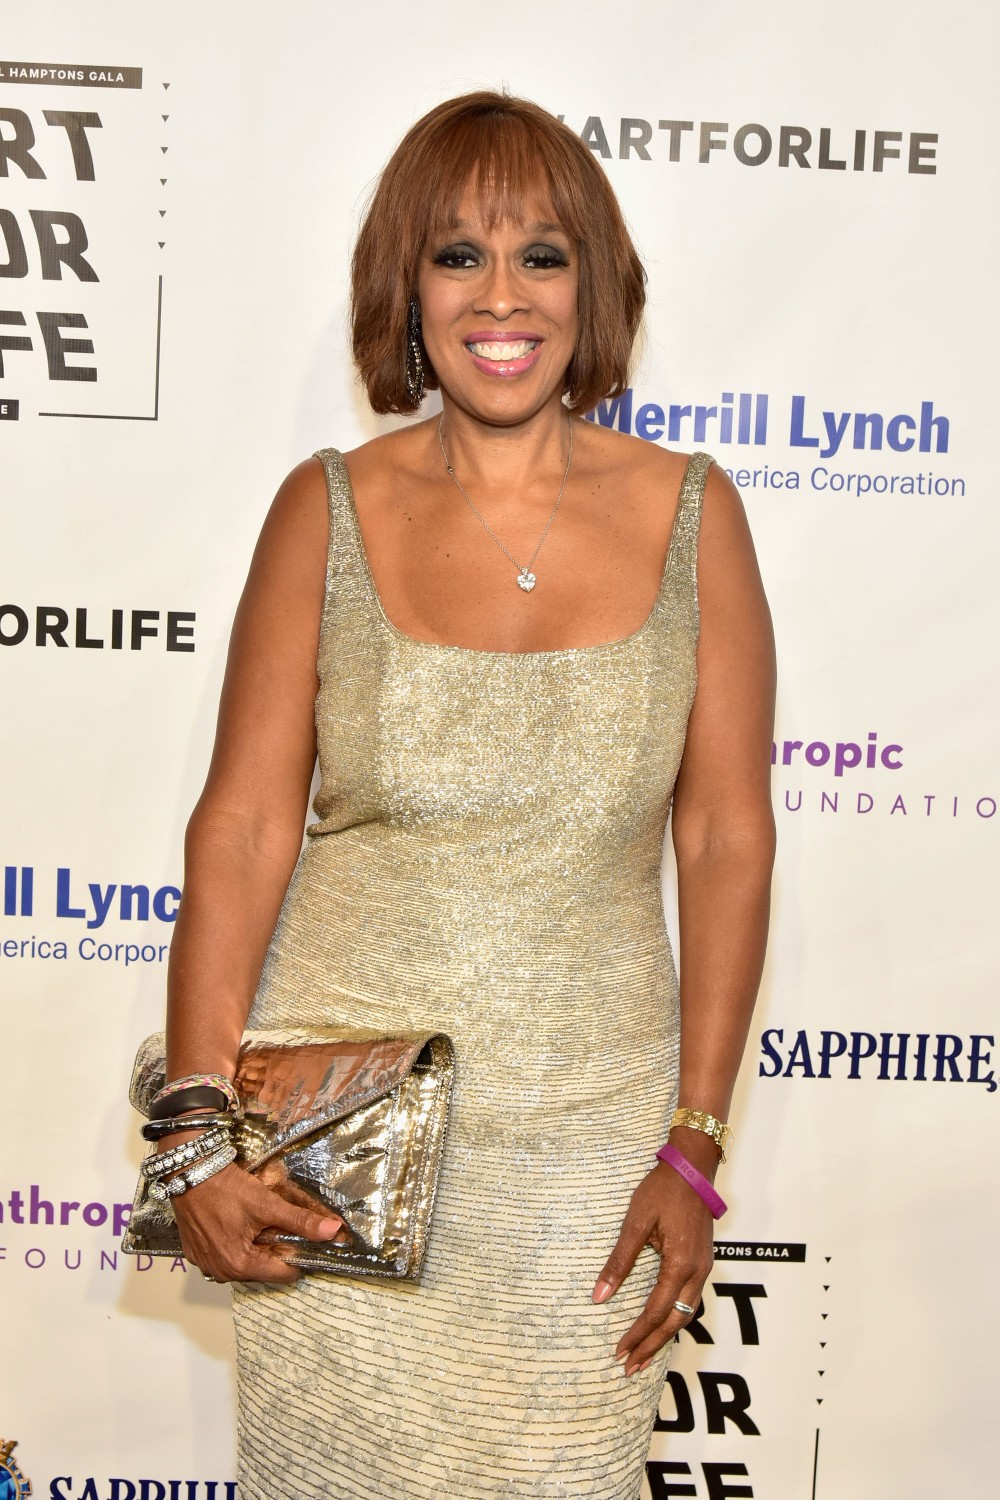 BRIDGEHAMPTON, NY - JULY 16:  Gayle King attends Rush Philanthropic Arts Foundation's 2016 ART FOR LIFE Benefit presented by Bombay Sapphire Gin at Fairview Farms on July 16, 2016 in Bridgehampton, New York.  (Photo by Eugene Gologursky/Getty Images for Bombay Sapphire)